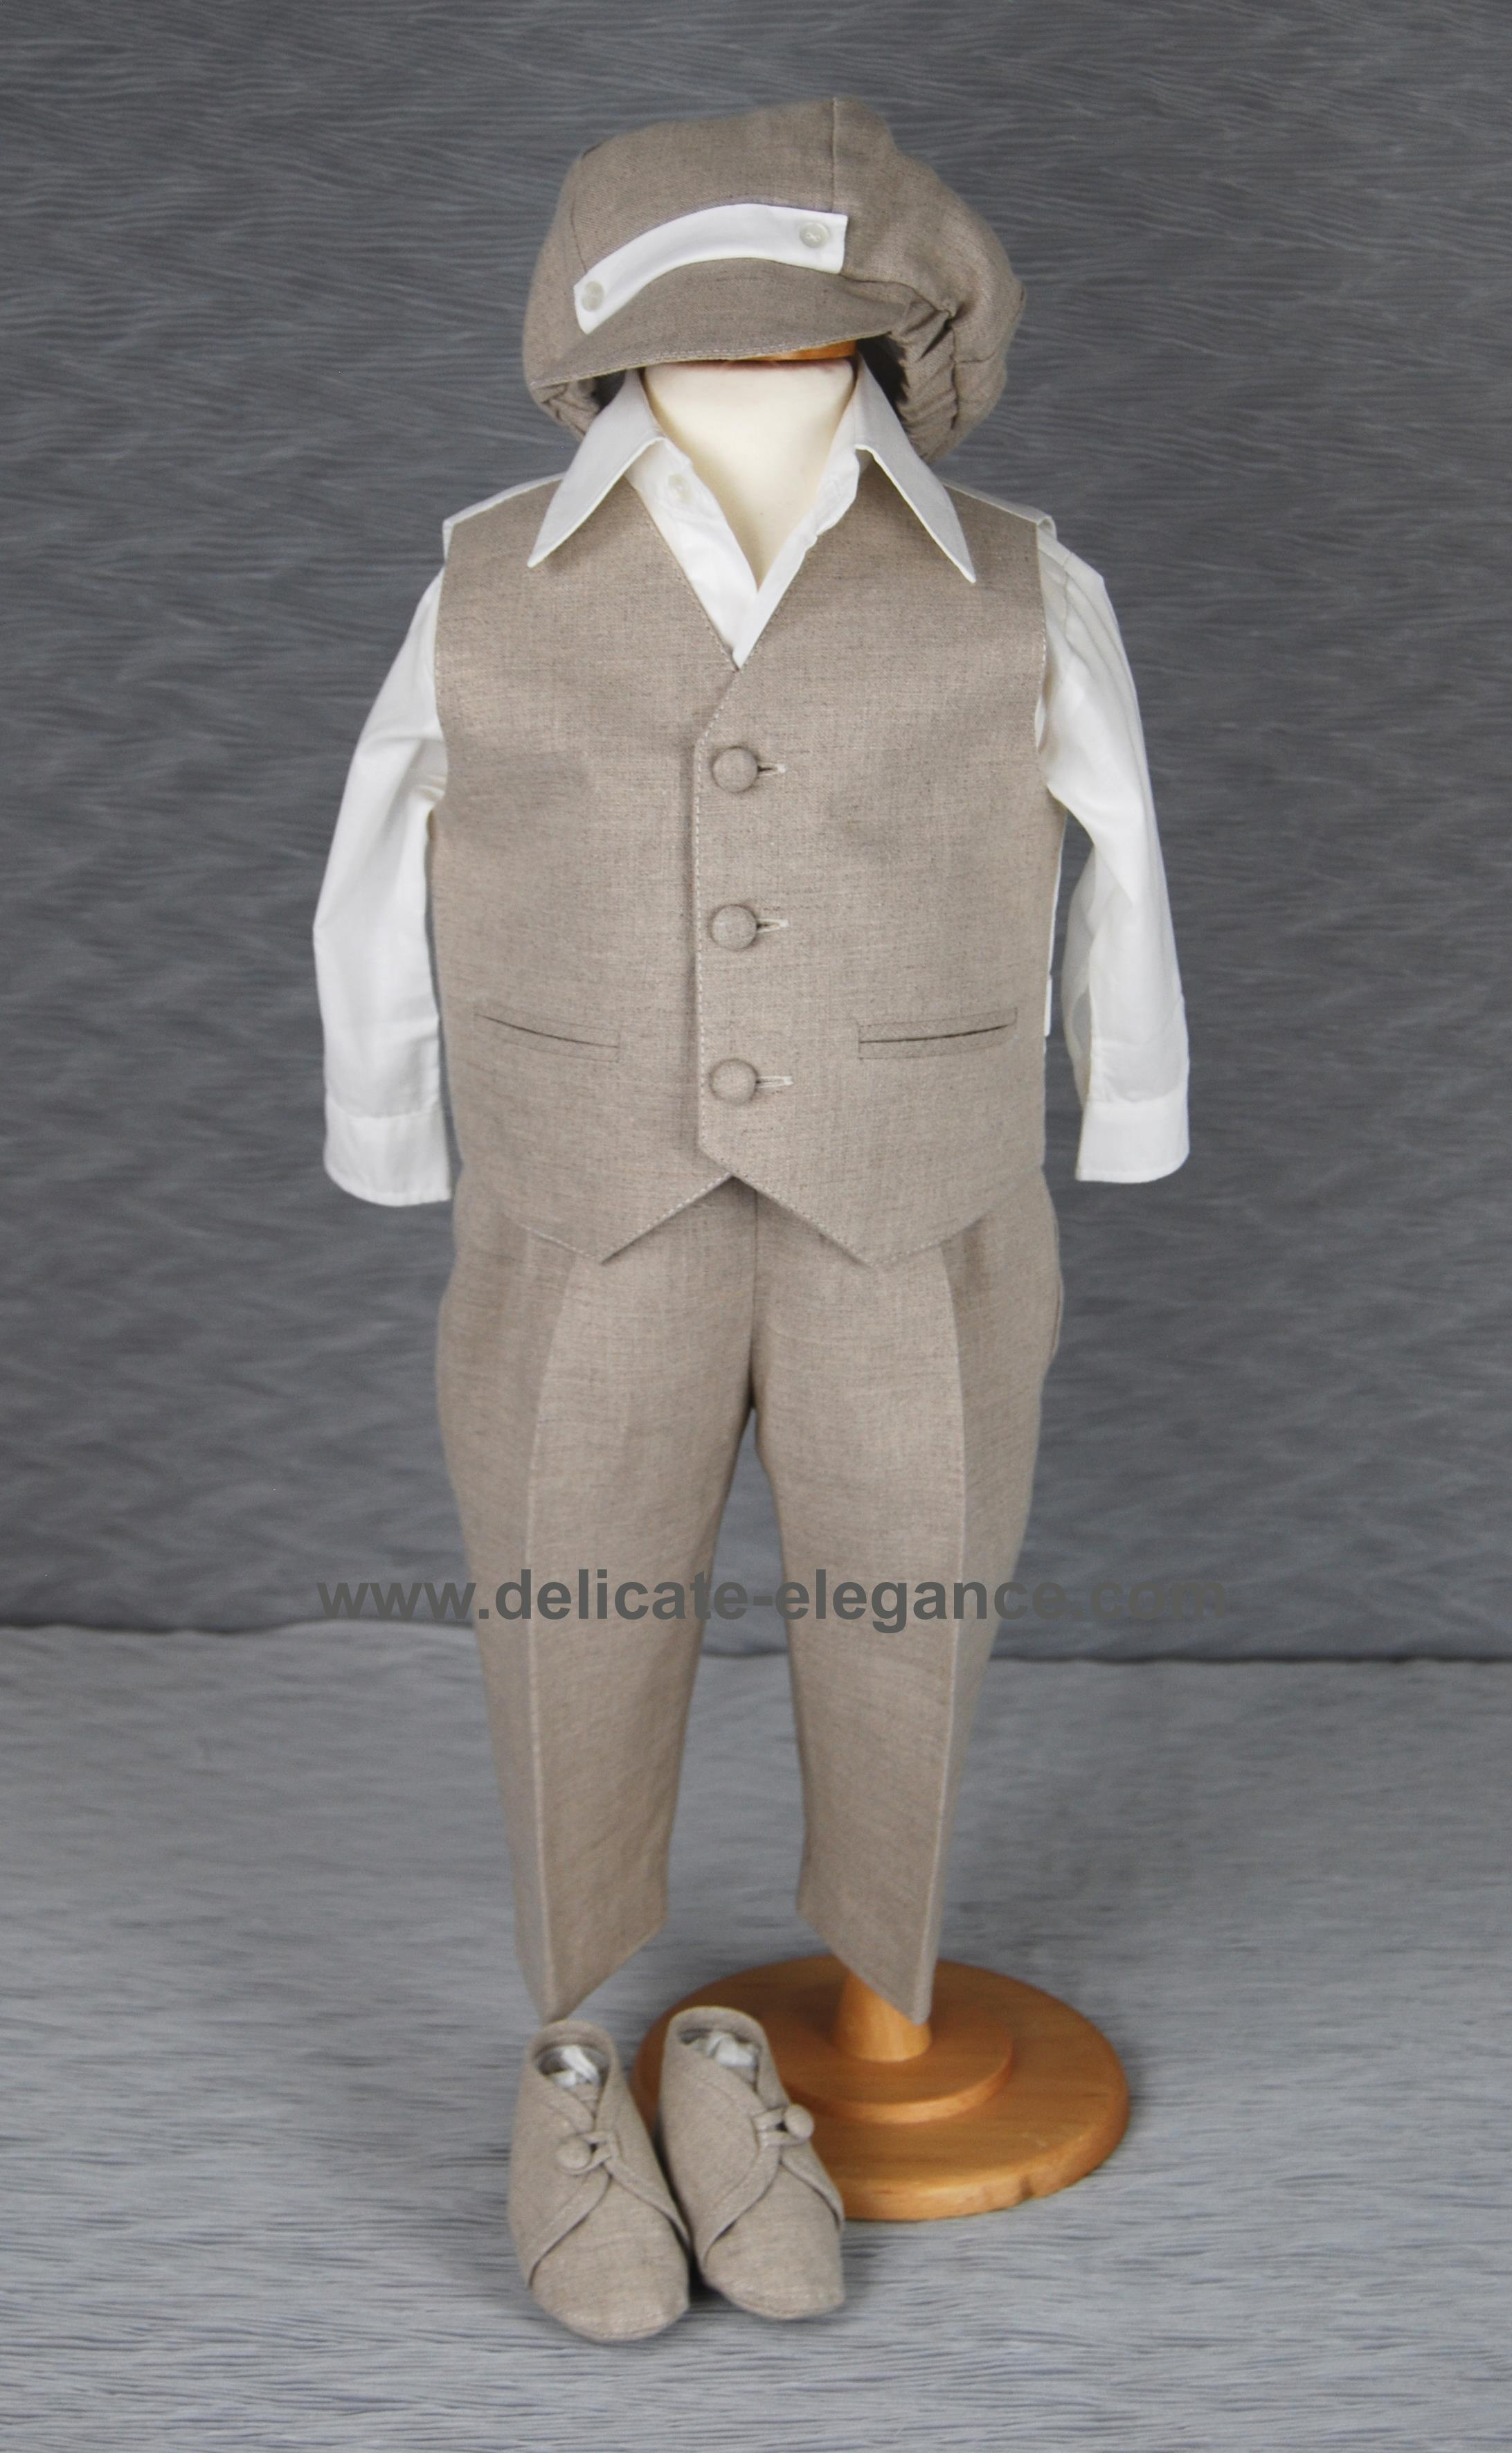 1210: Boys' Four-Piece Christening Suit